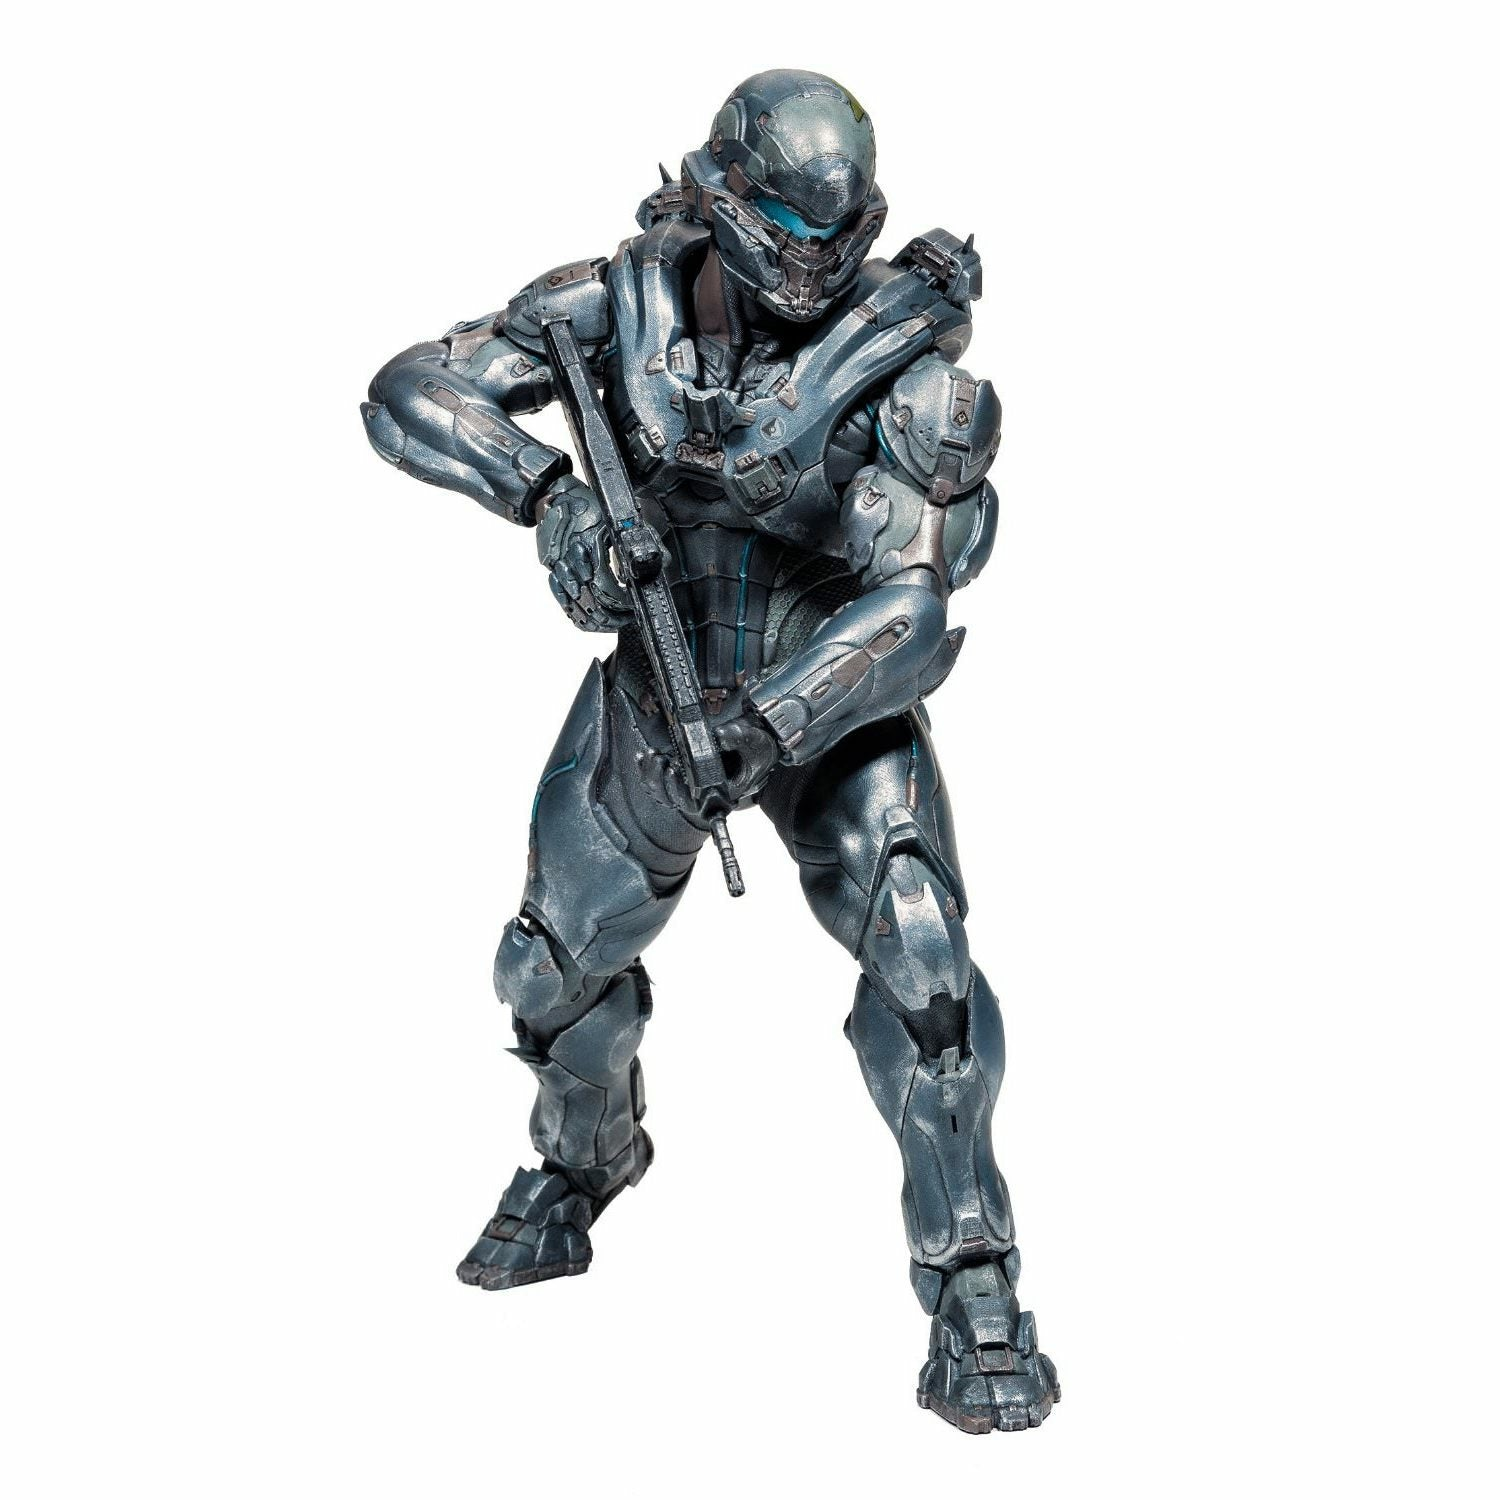 Halo 5 Guardians Helmeted Spartan Locke 10 Inch Action Figure